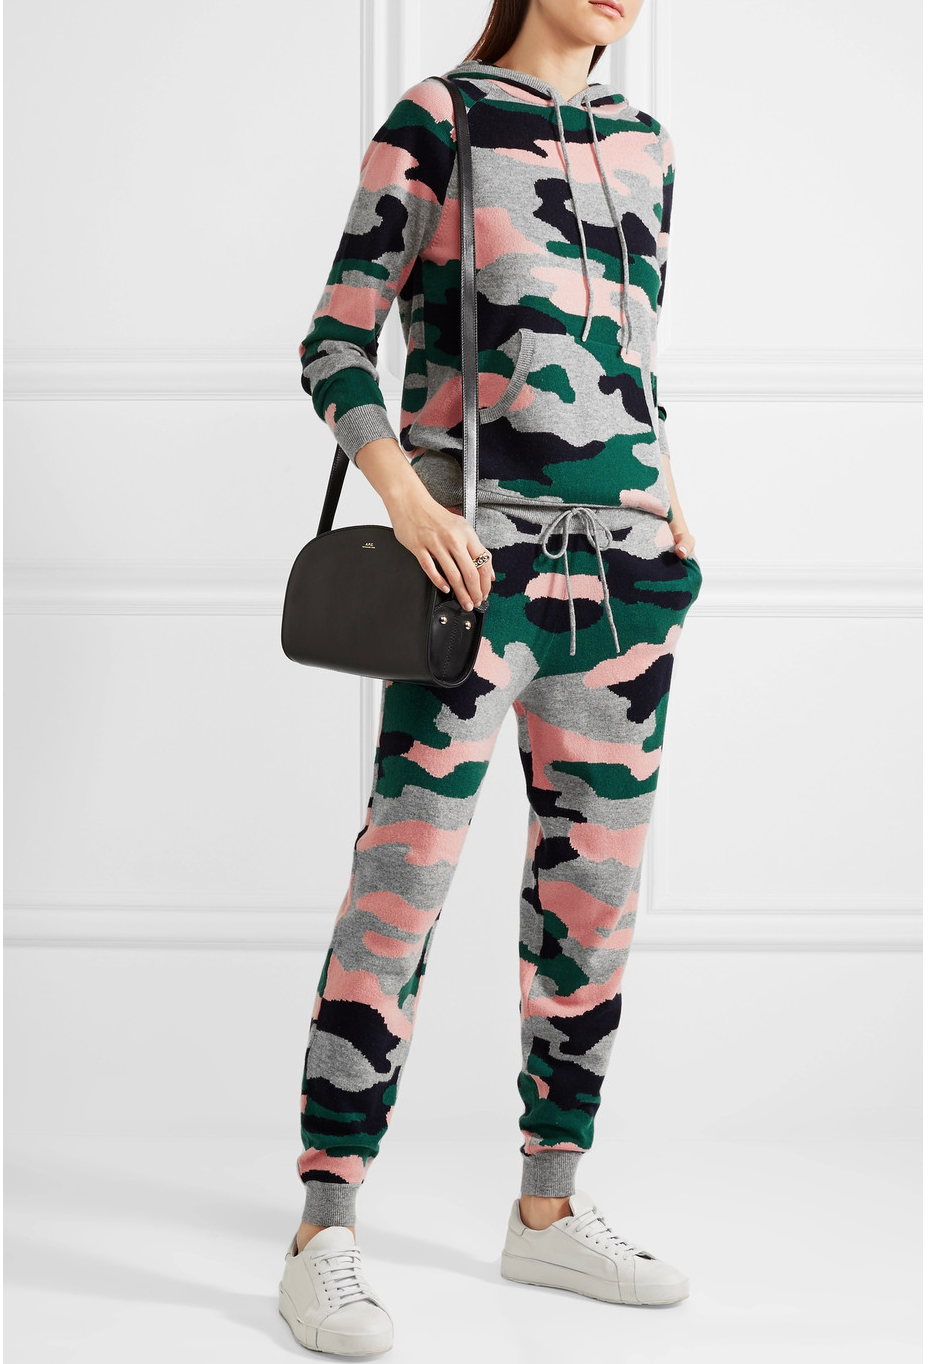 https://www.net-a-porter.com/gb/en/product/791823/Chinti_and_Parker/intarsia-wool-and-cashmere-blend-track-pants